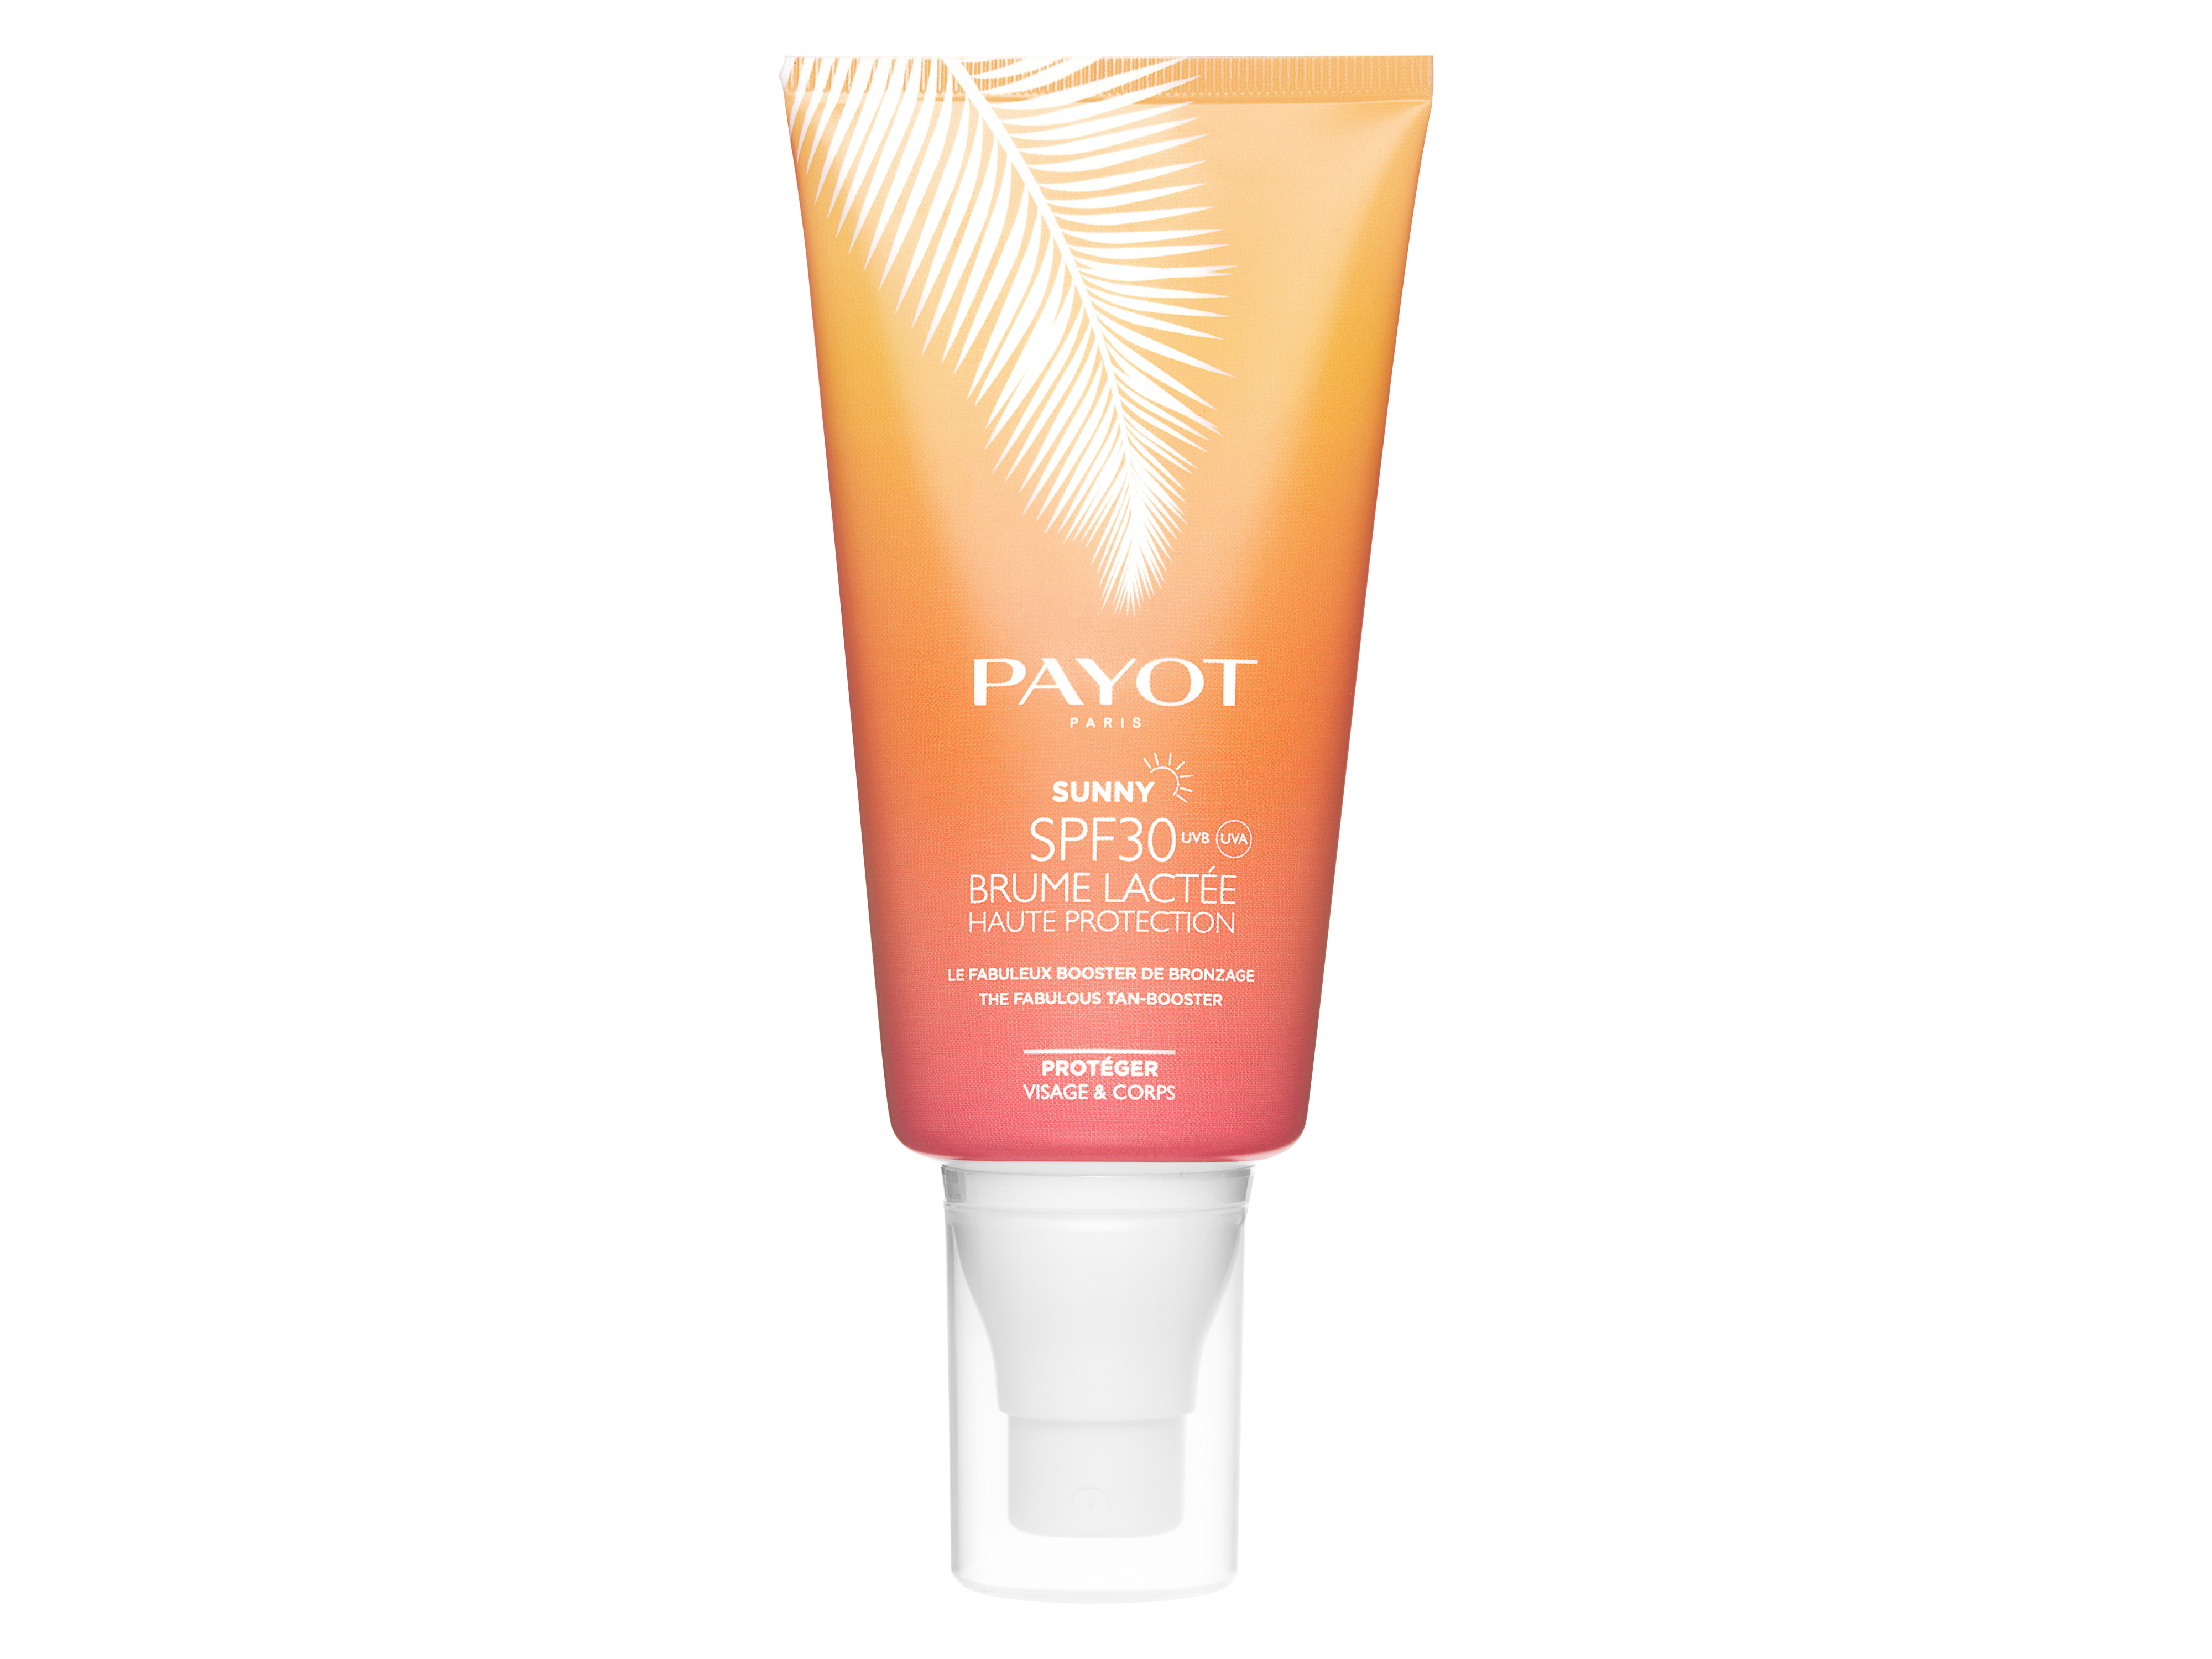 Payot Sunny Brume Lactée Face and Body, SPF 30, 150 ml